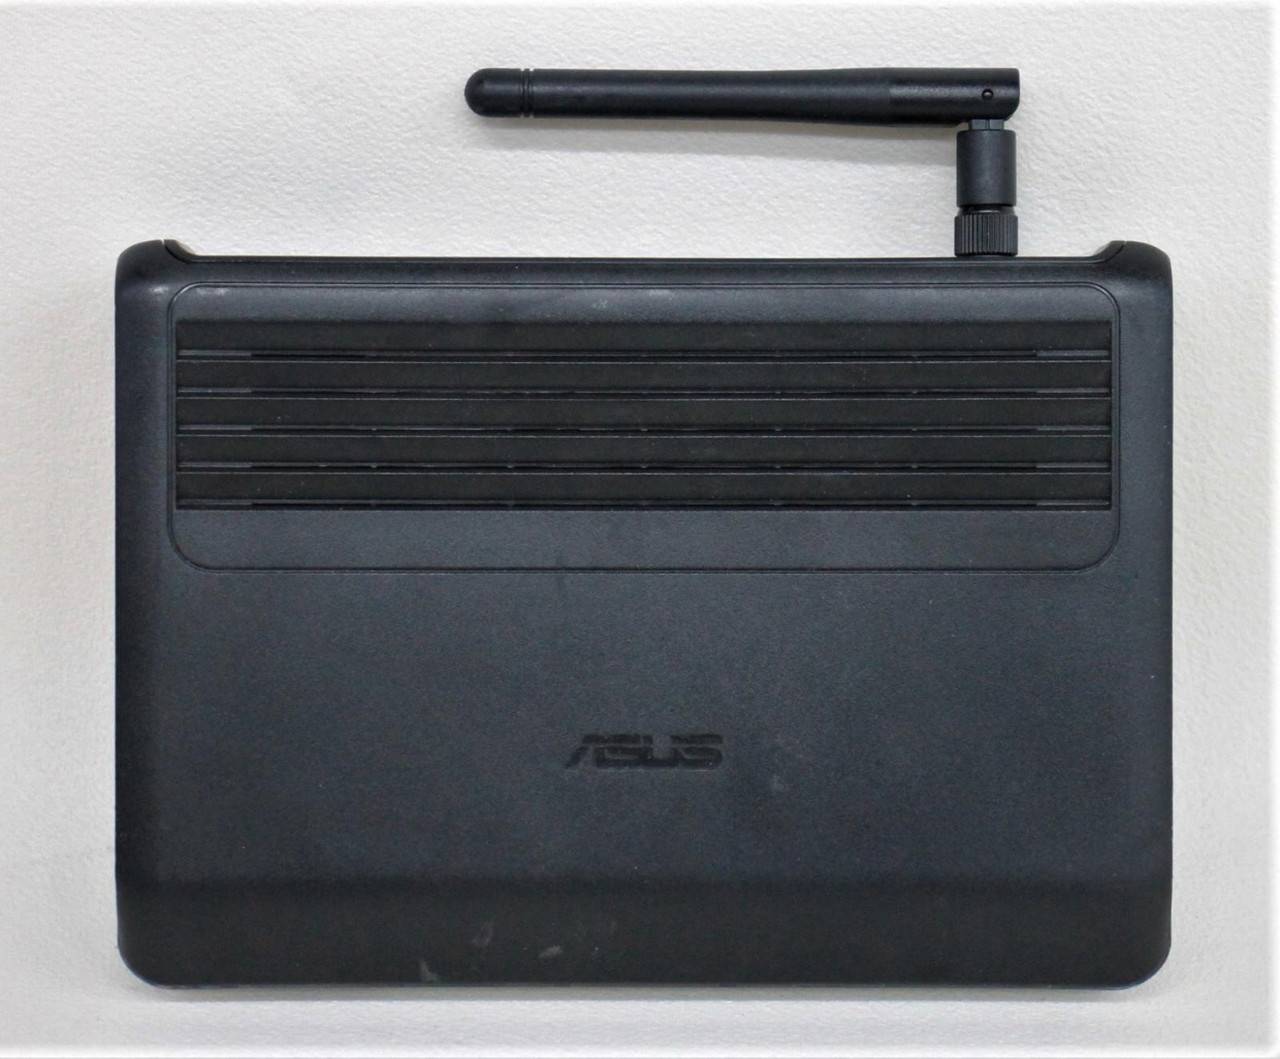 ASUS Black WL-520GC 5-Ethernet Port 125 Mbps Integrated Switch Wireless Router